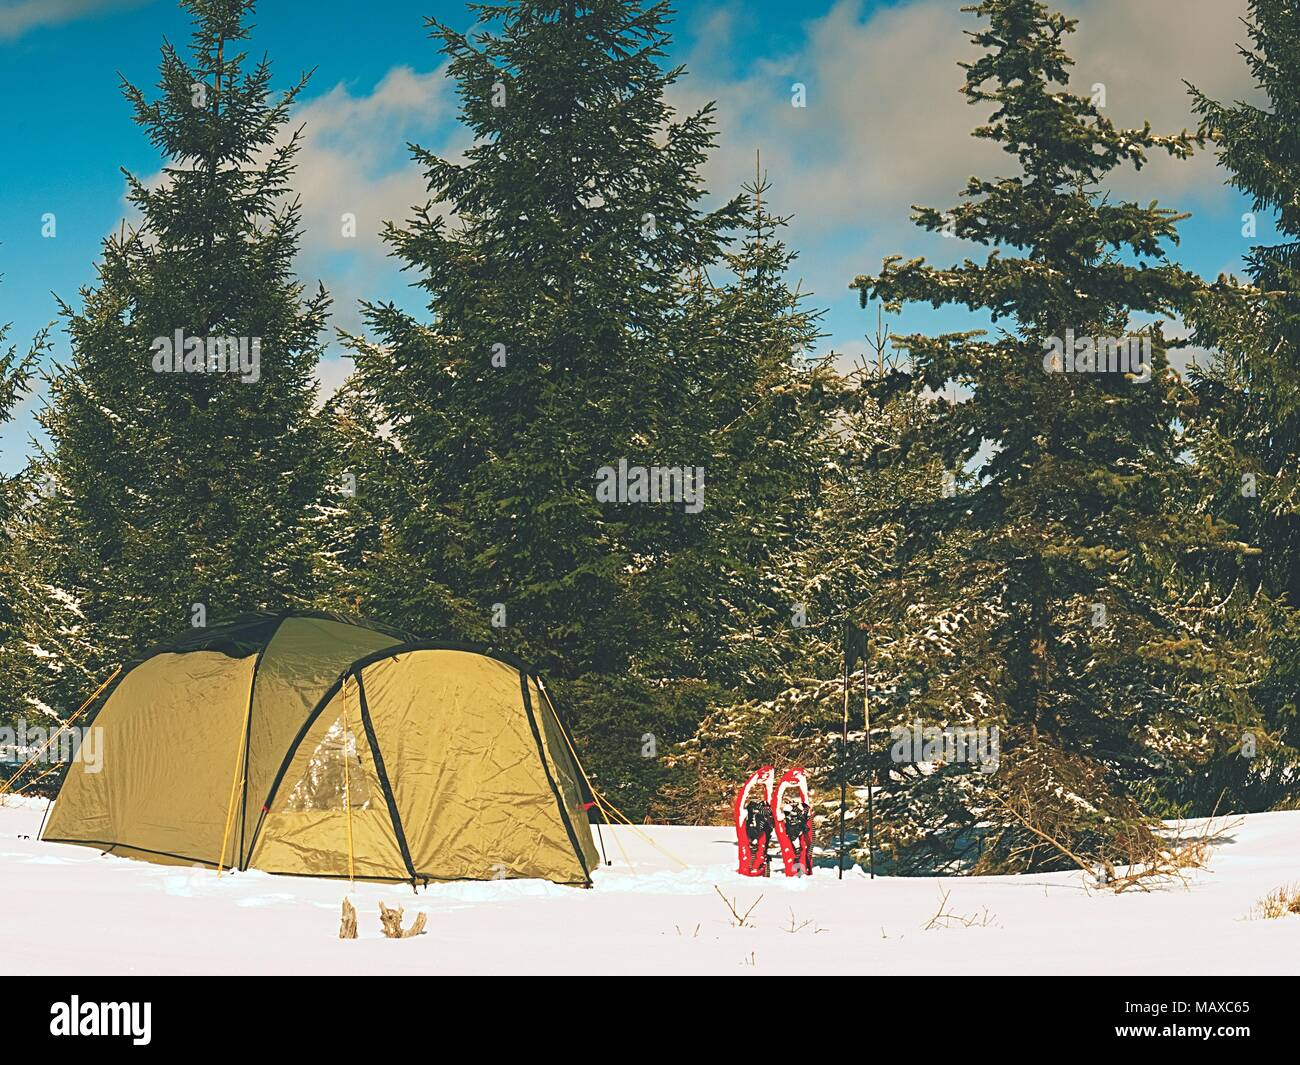 Camping during winter hiking in mountains. Green touristic tent under spruces. - Stock Image